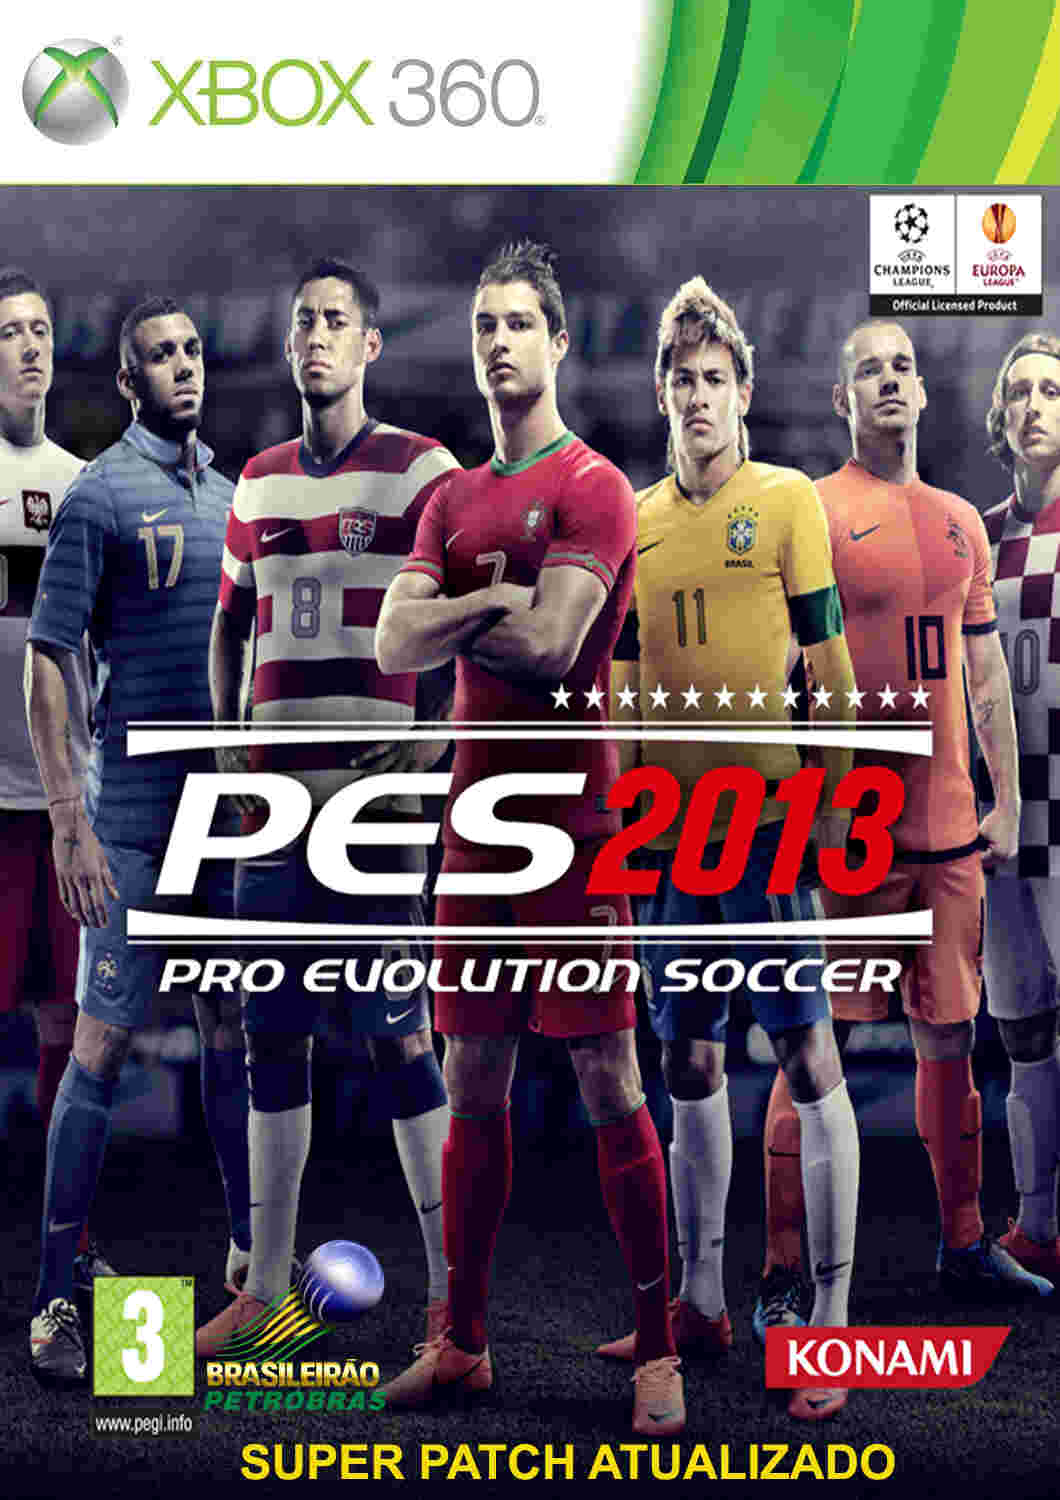 Pes 2013 Multi Converter 1.4 With Pc